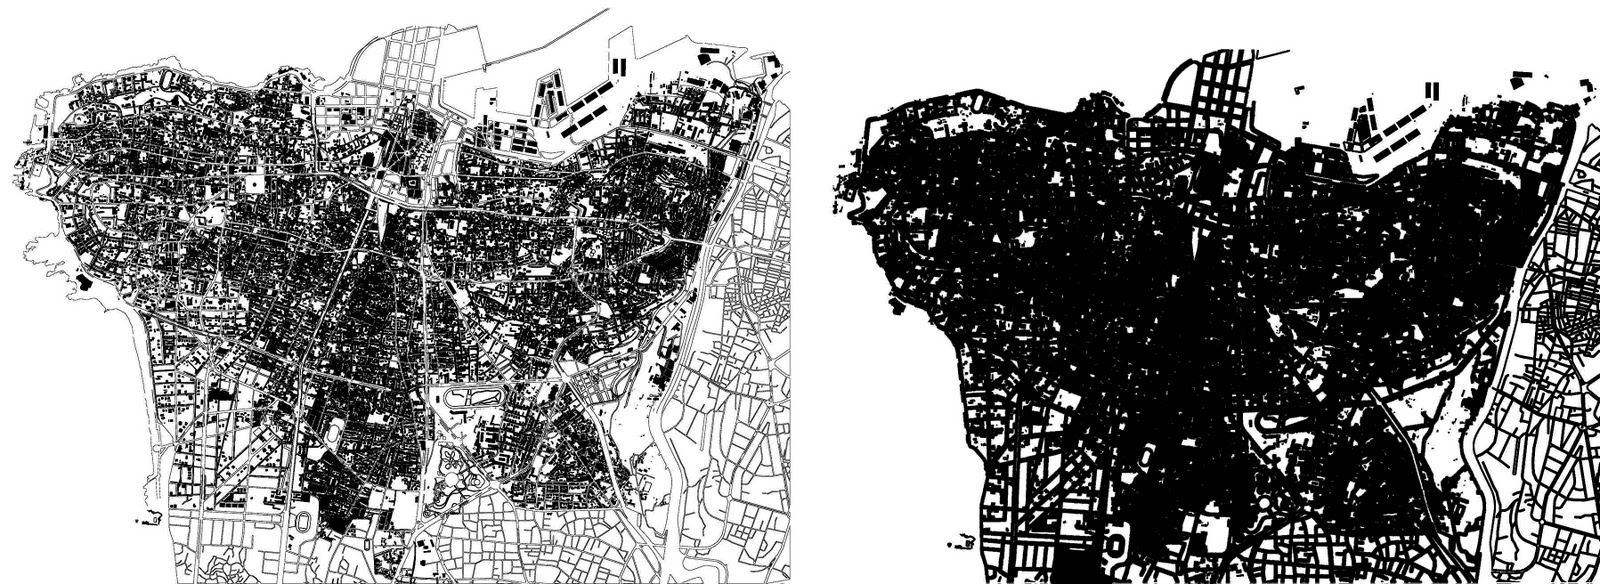 beirut the fantastic get me out of this traffic jam it is deceiving to look at beiruts map its streets empty therefor the second map depicts the reality of the mass versus void of the city